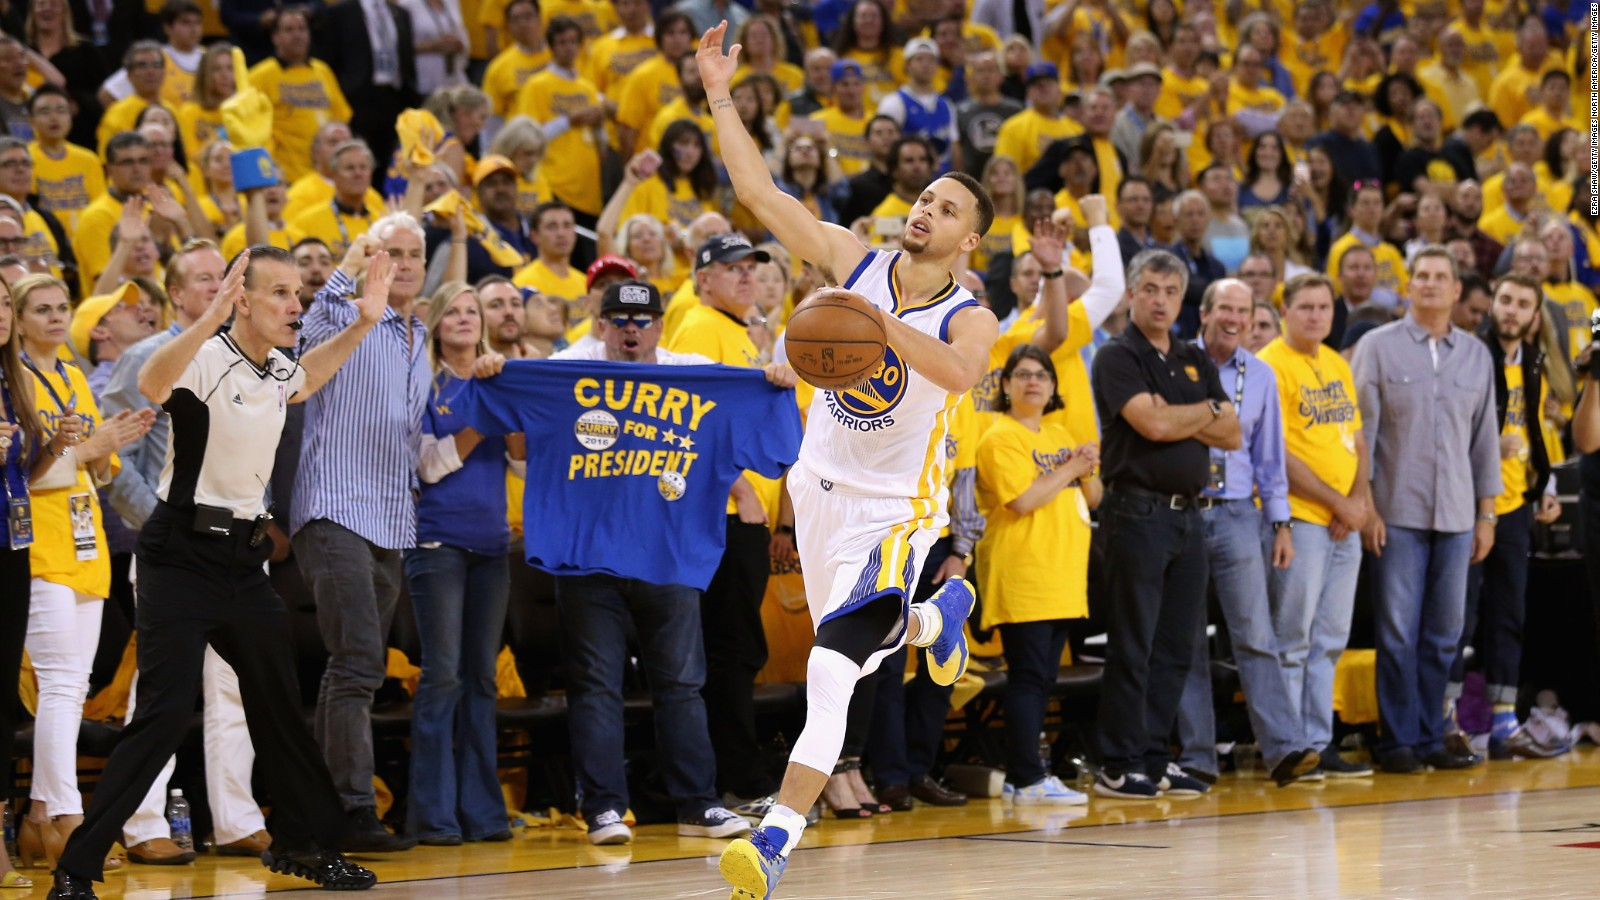 chef curry is the